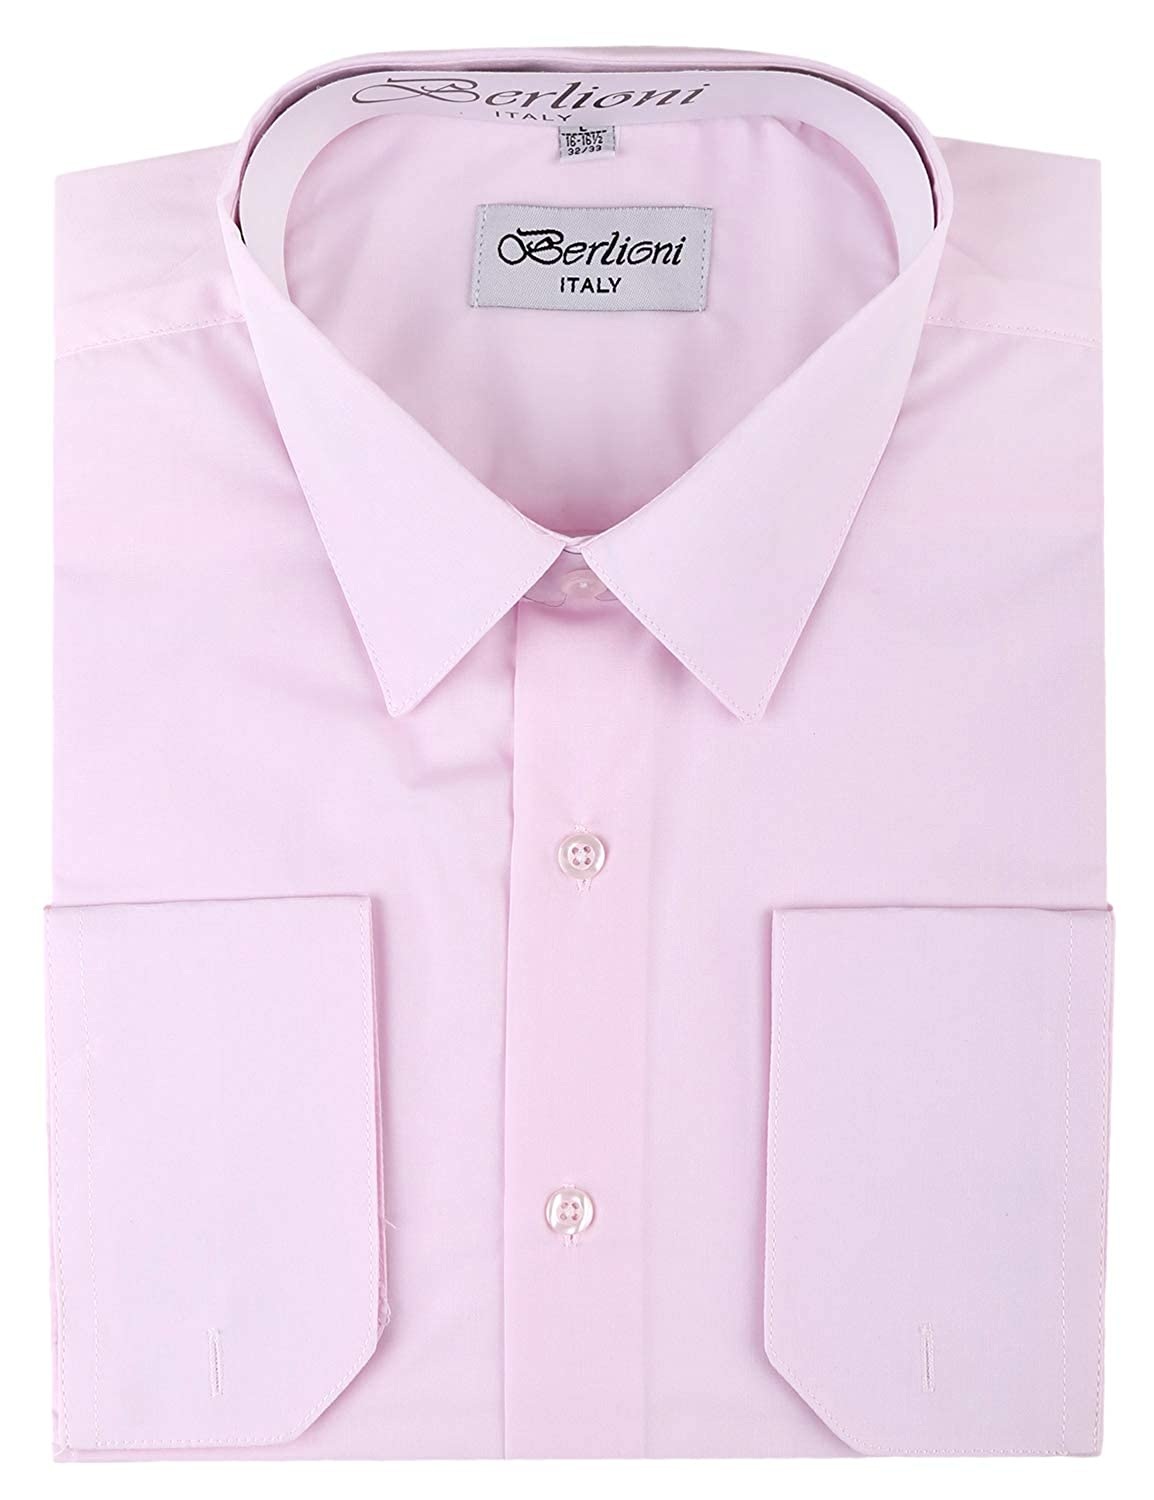 Berlioni Mens Dress Shirt Convertible French Cuffs Huge Color